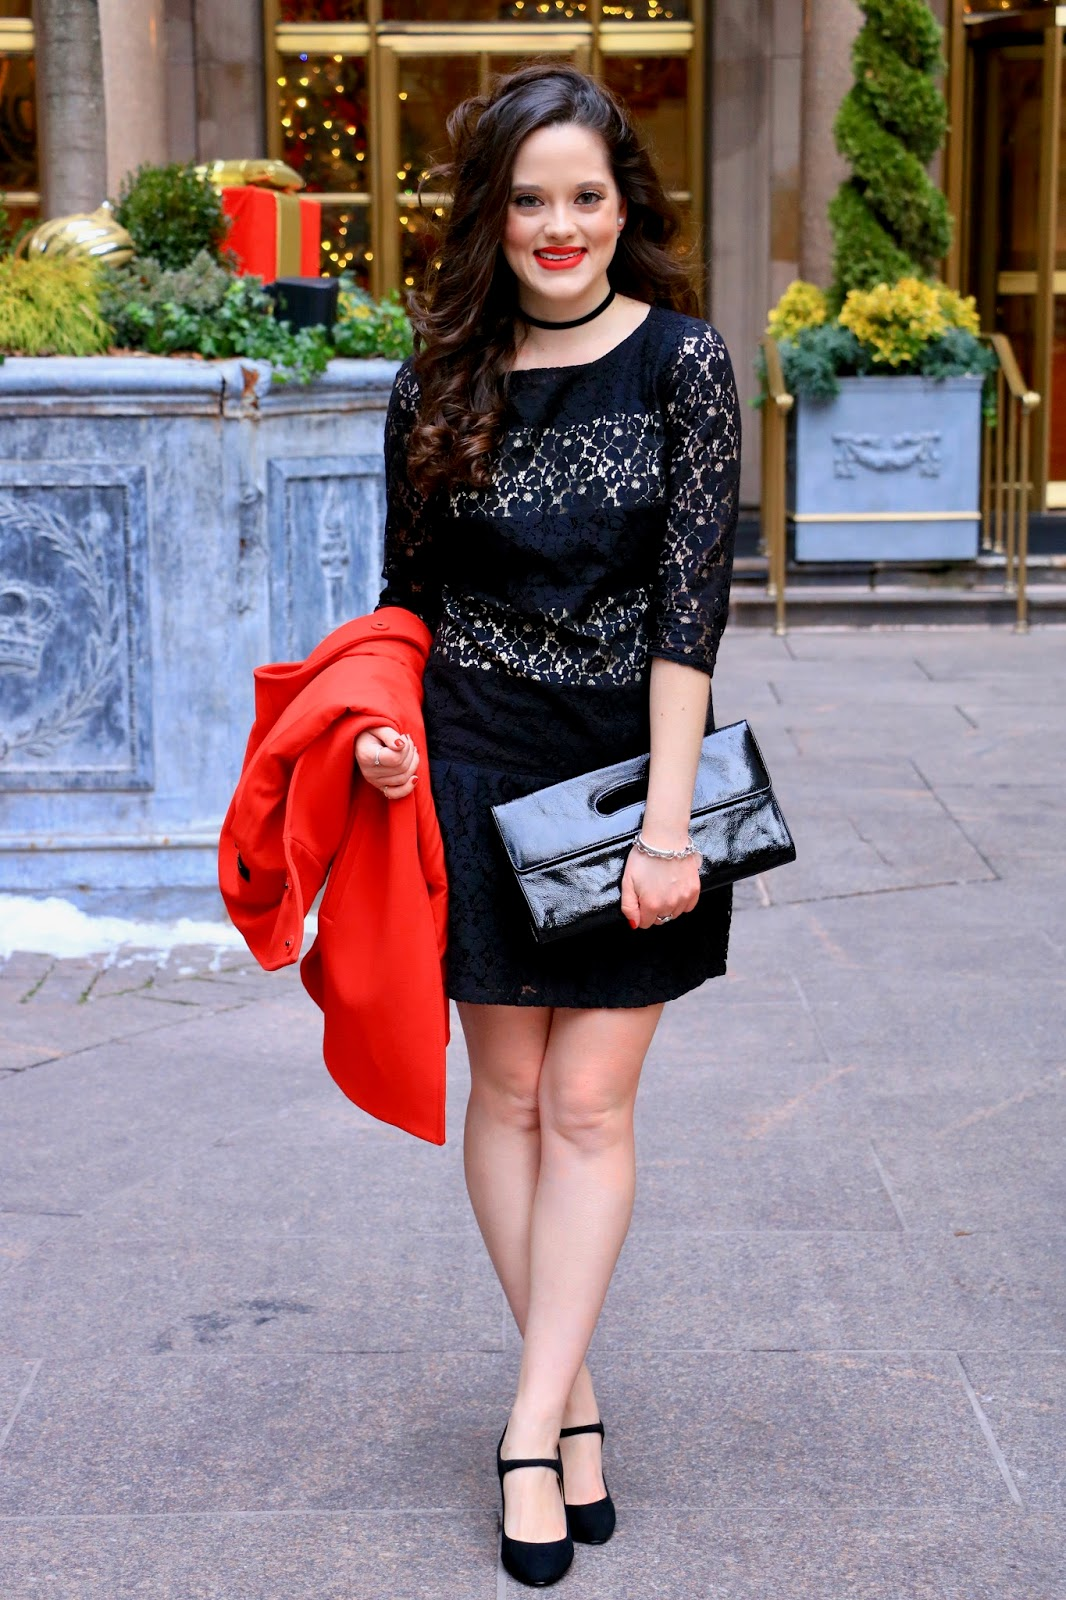 fashion blogger holiday outfit pics